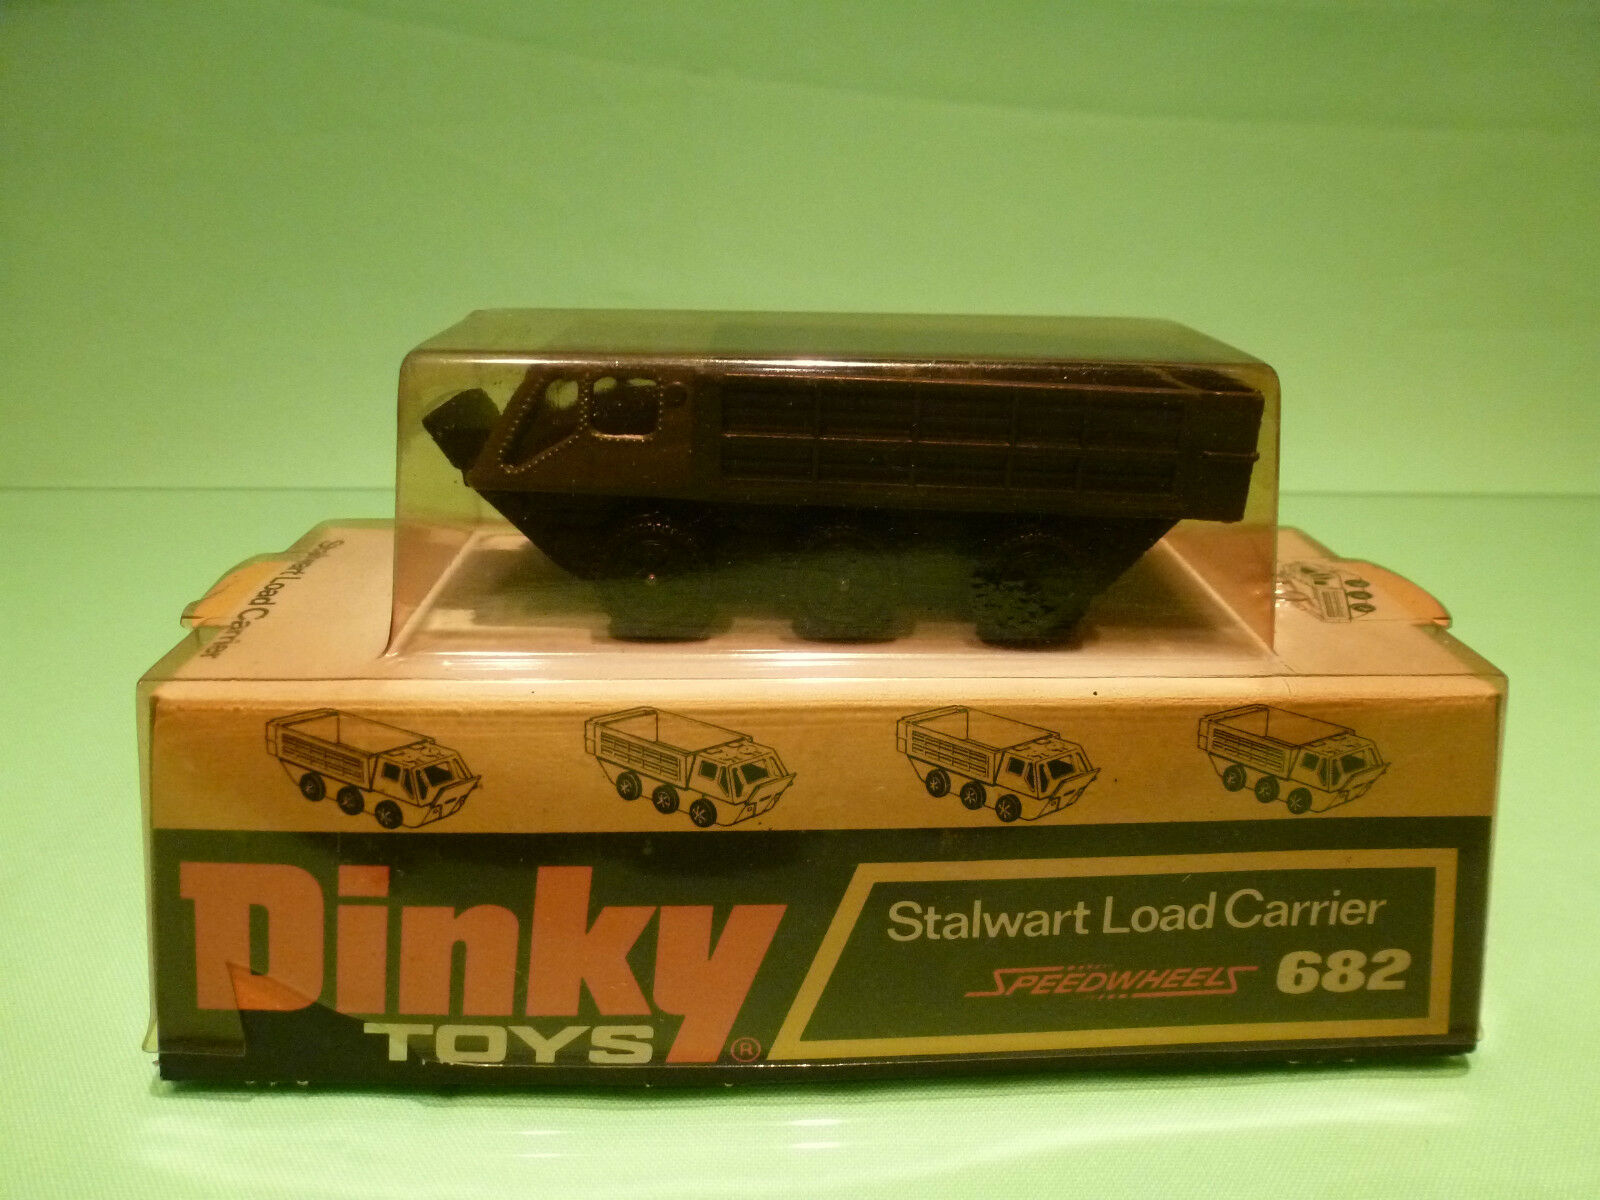 DINKY TOYS 682 STALWART LOAD CARRIER - RARE SELTEN - GOOD CONDITION IN BLISTER